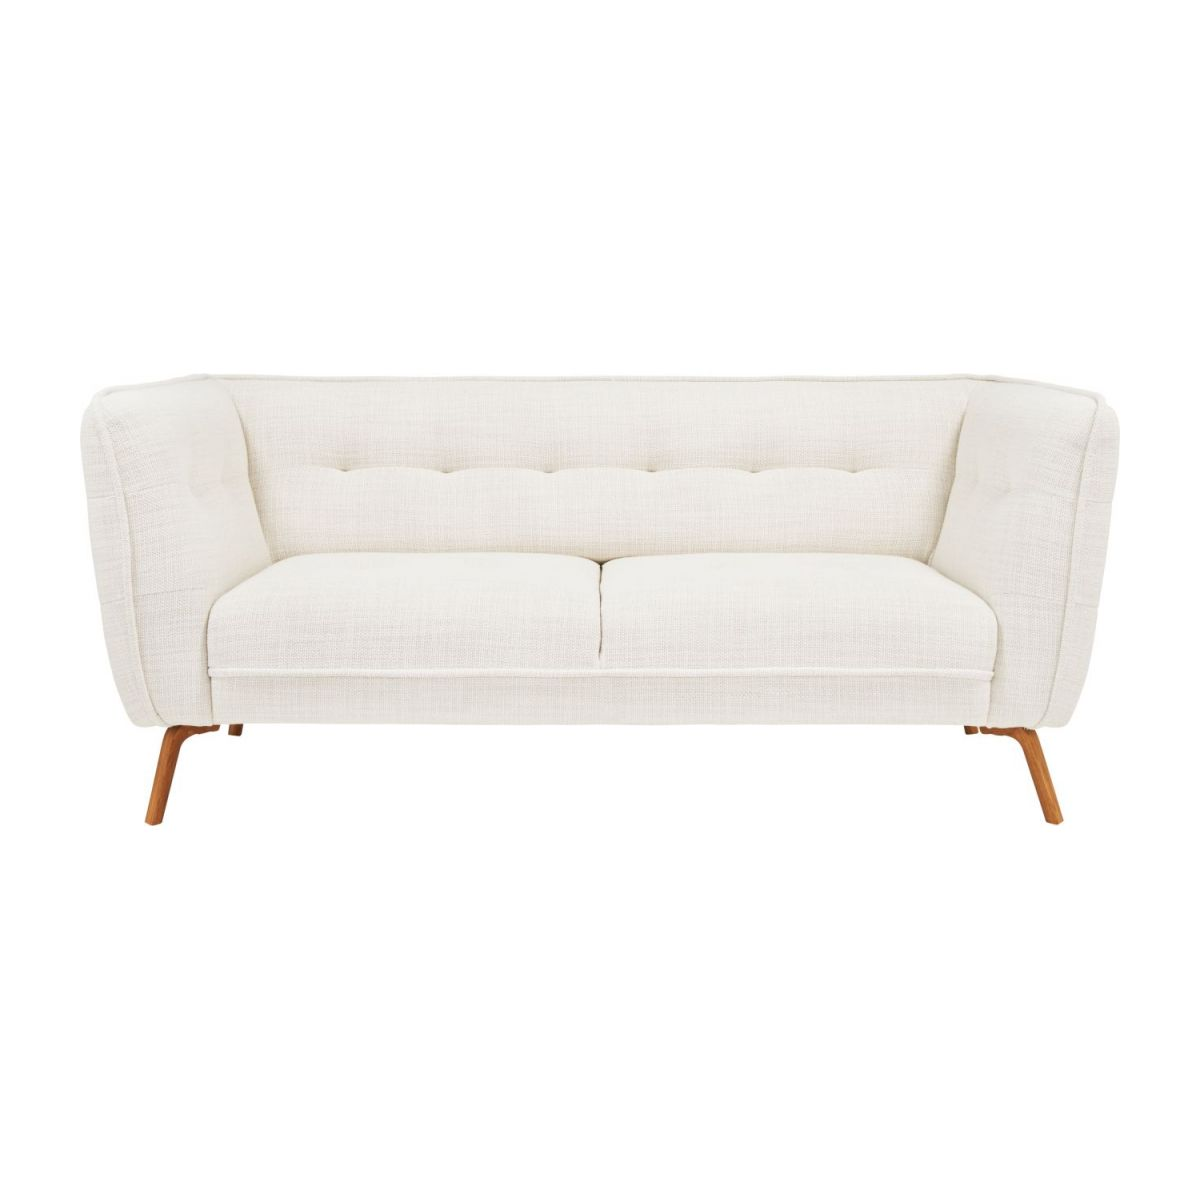 2 seater sofa in Fasoli fabric, snow white and oak legs n°2